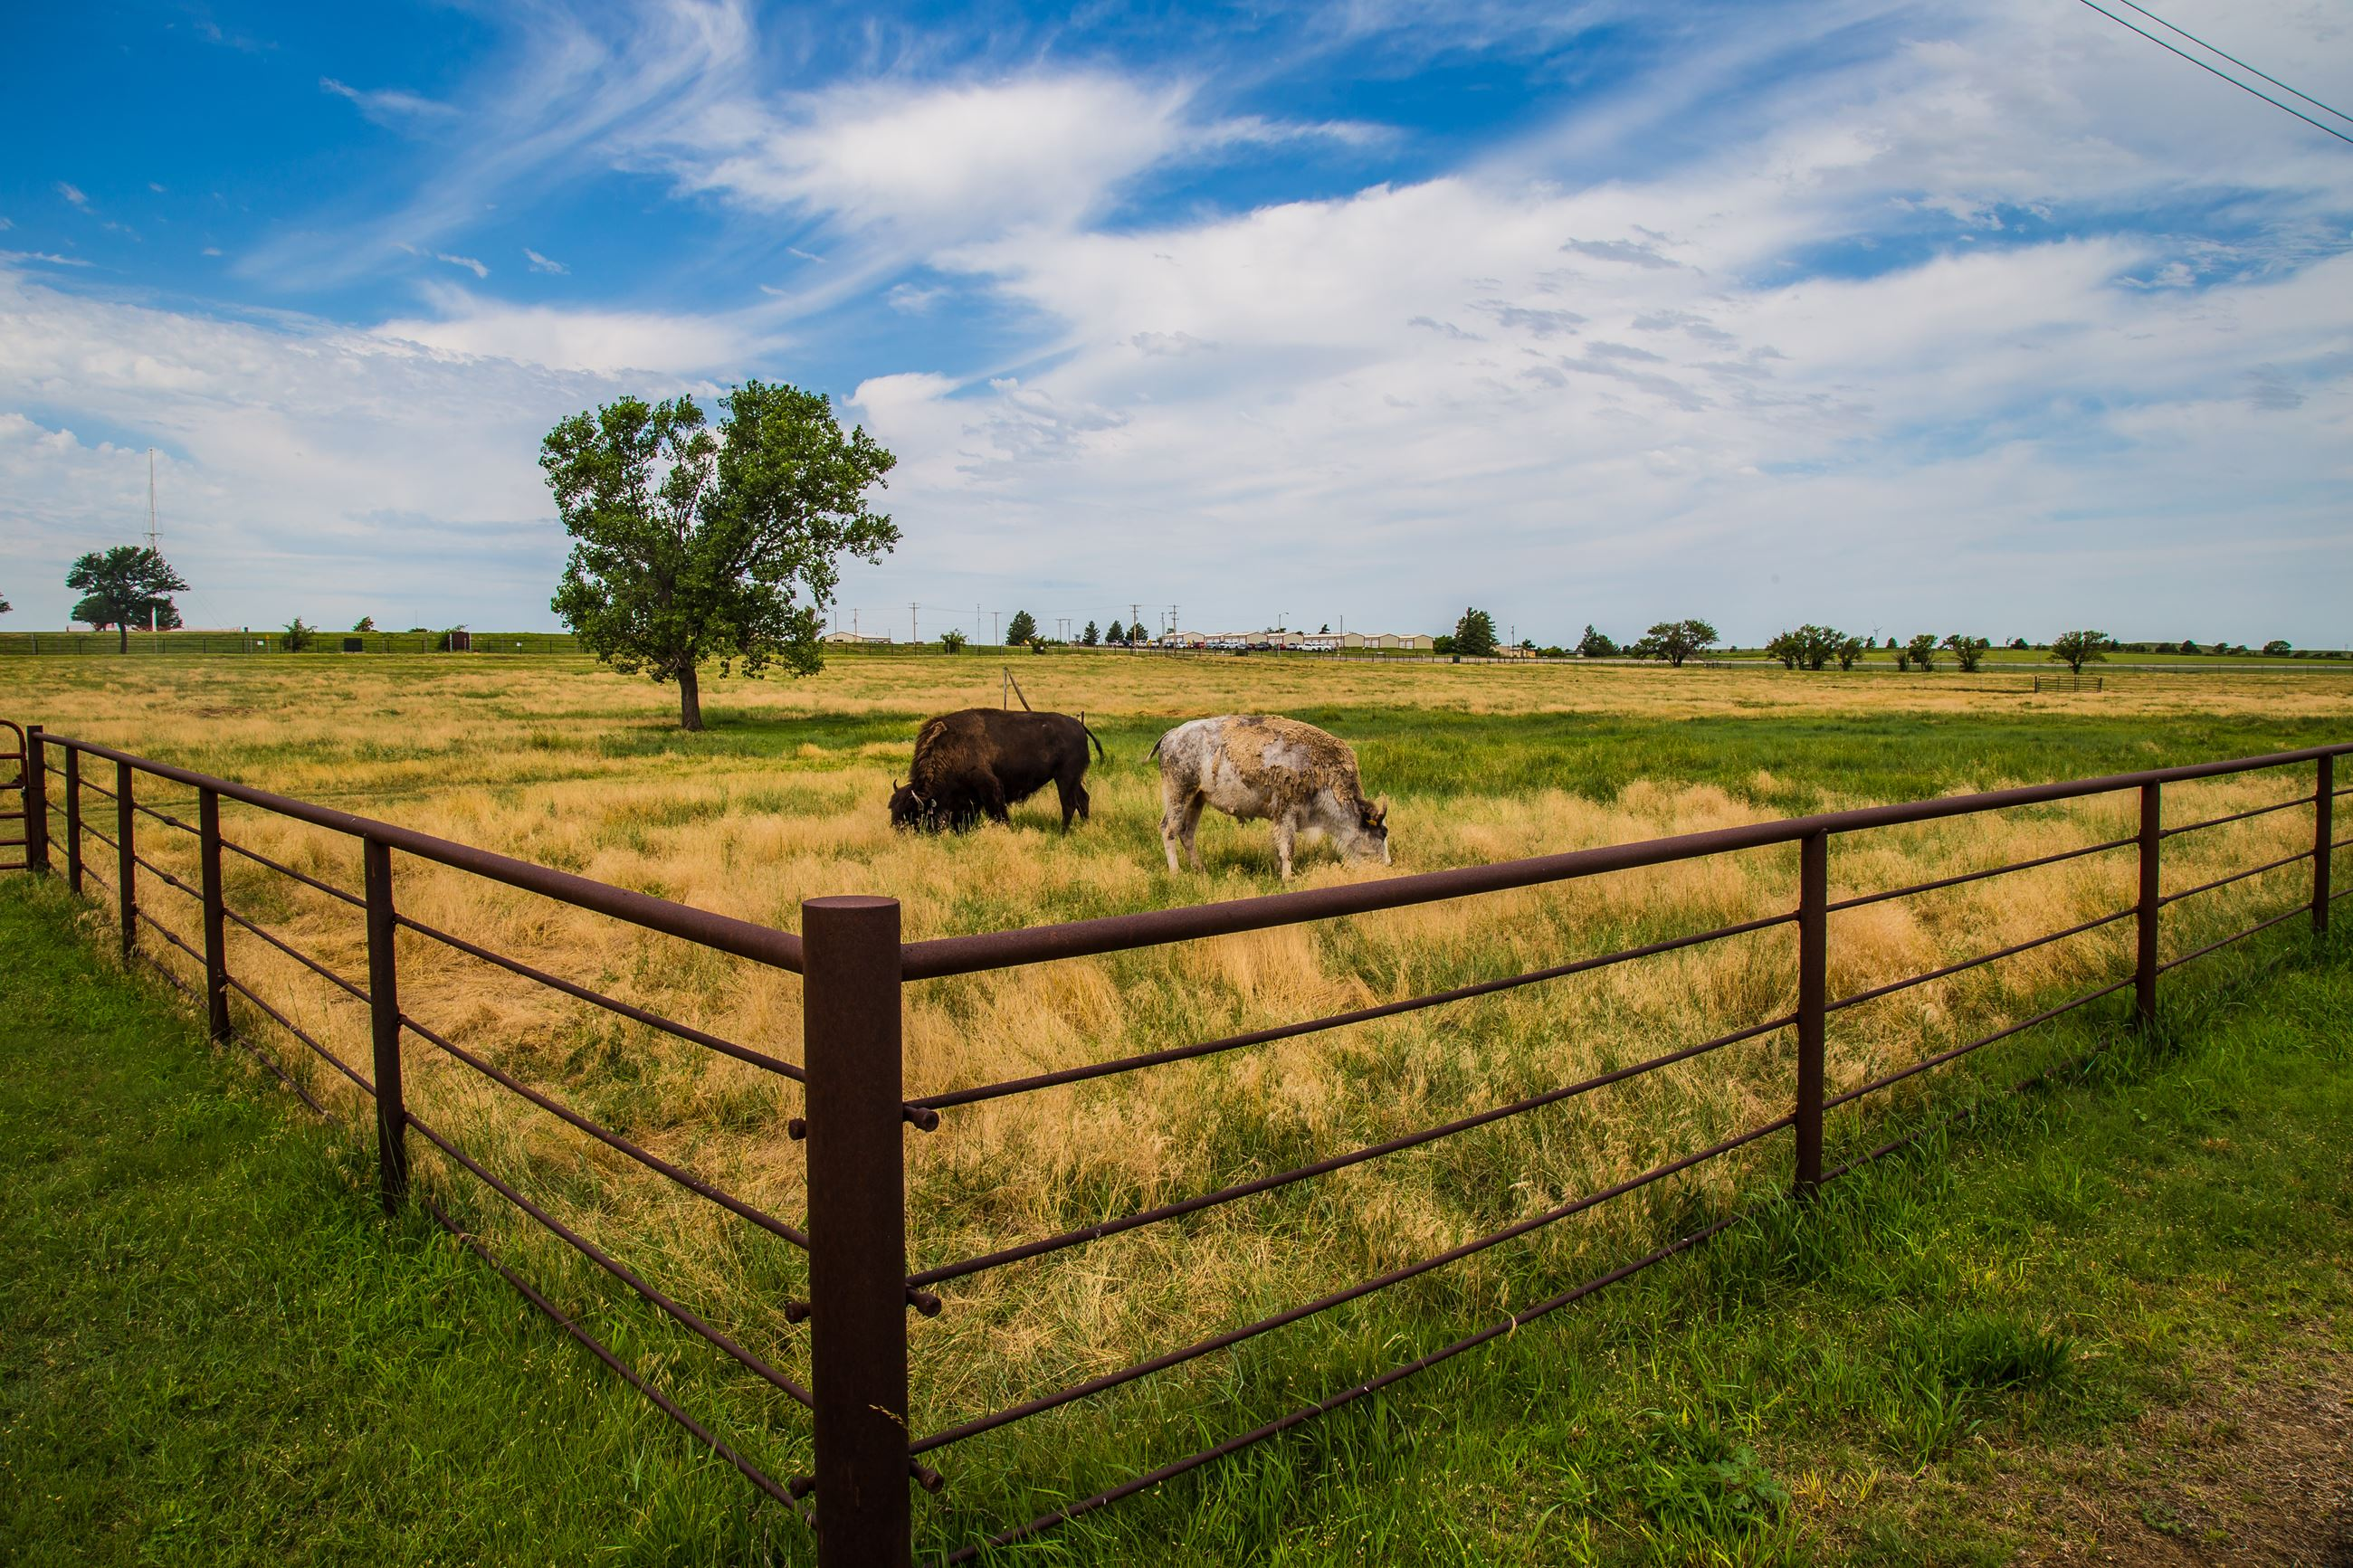 White and Brown Bison Grazing